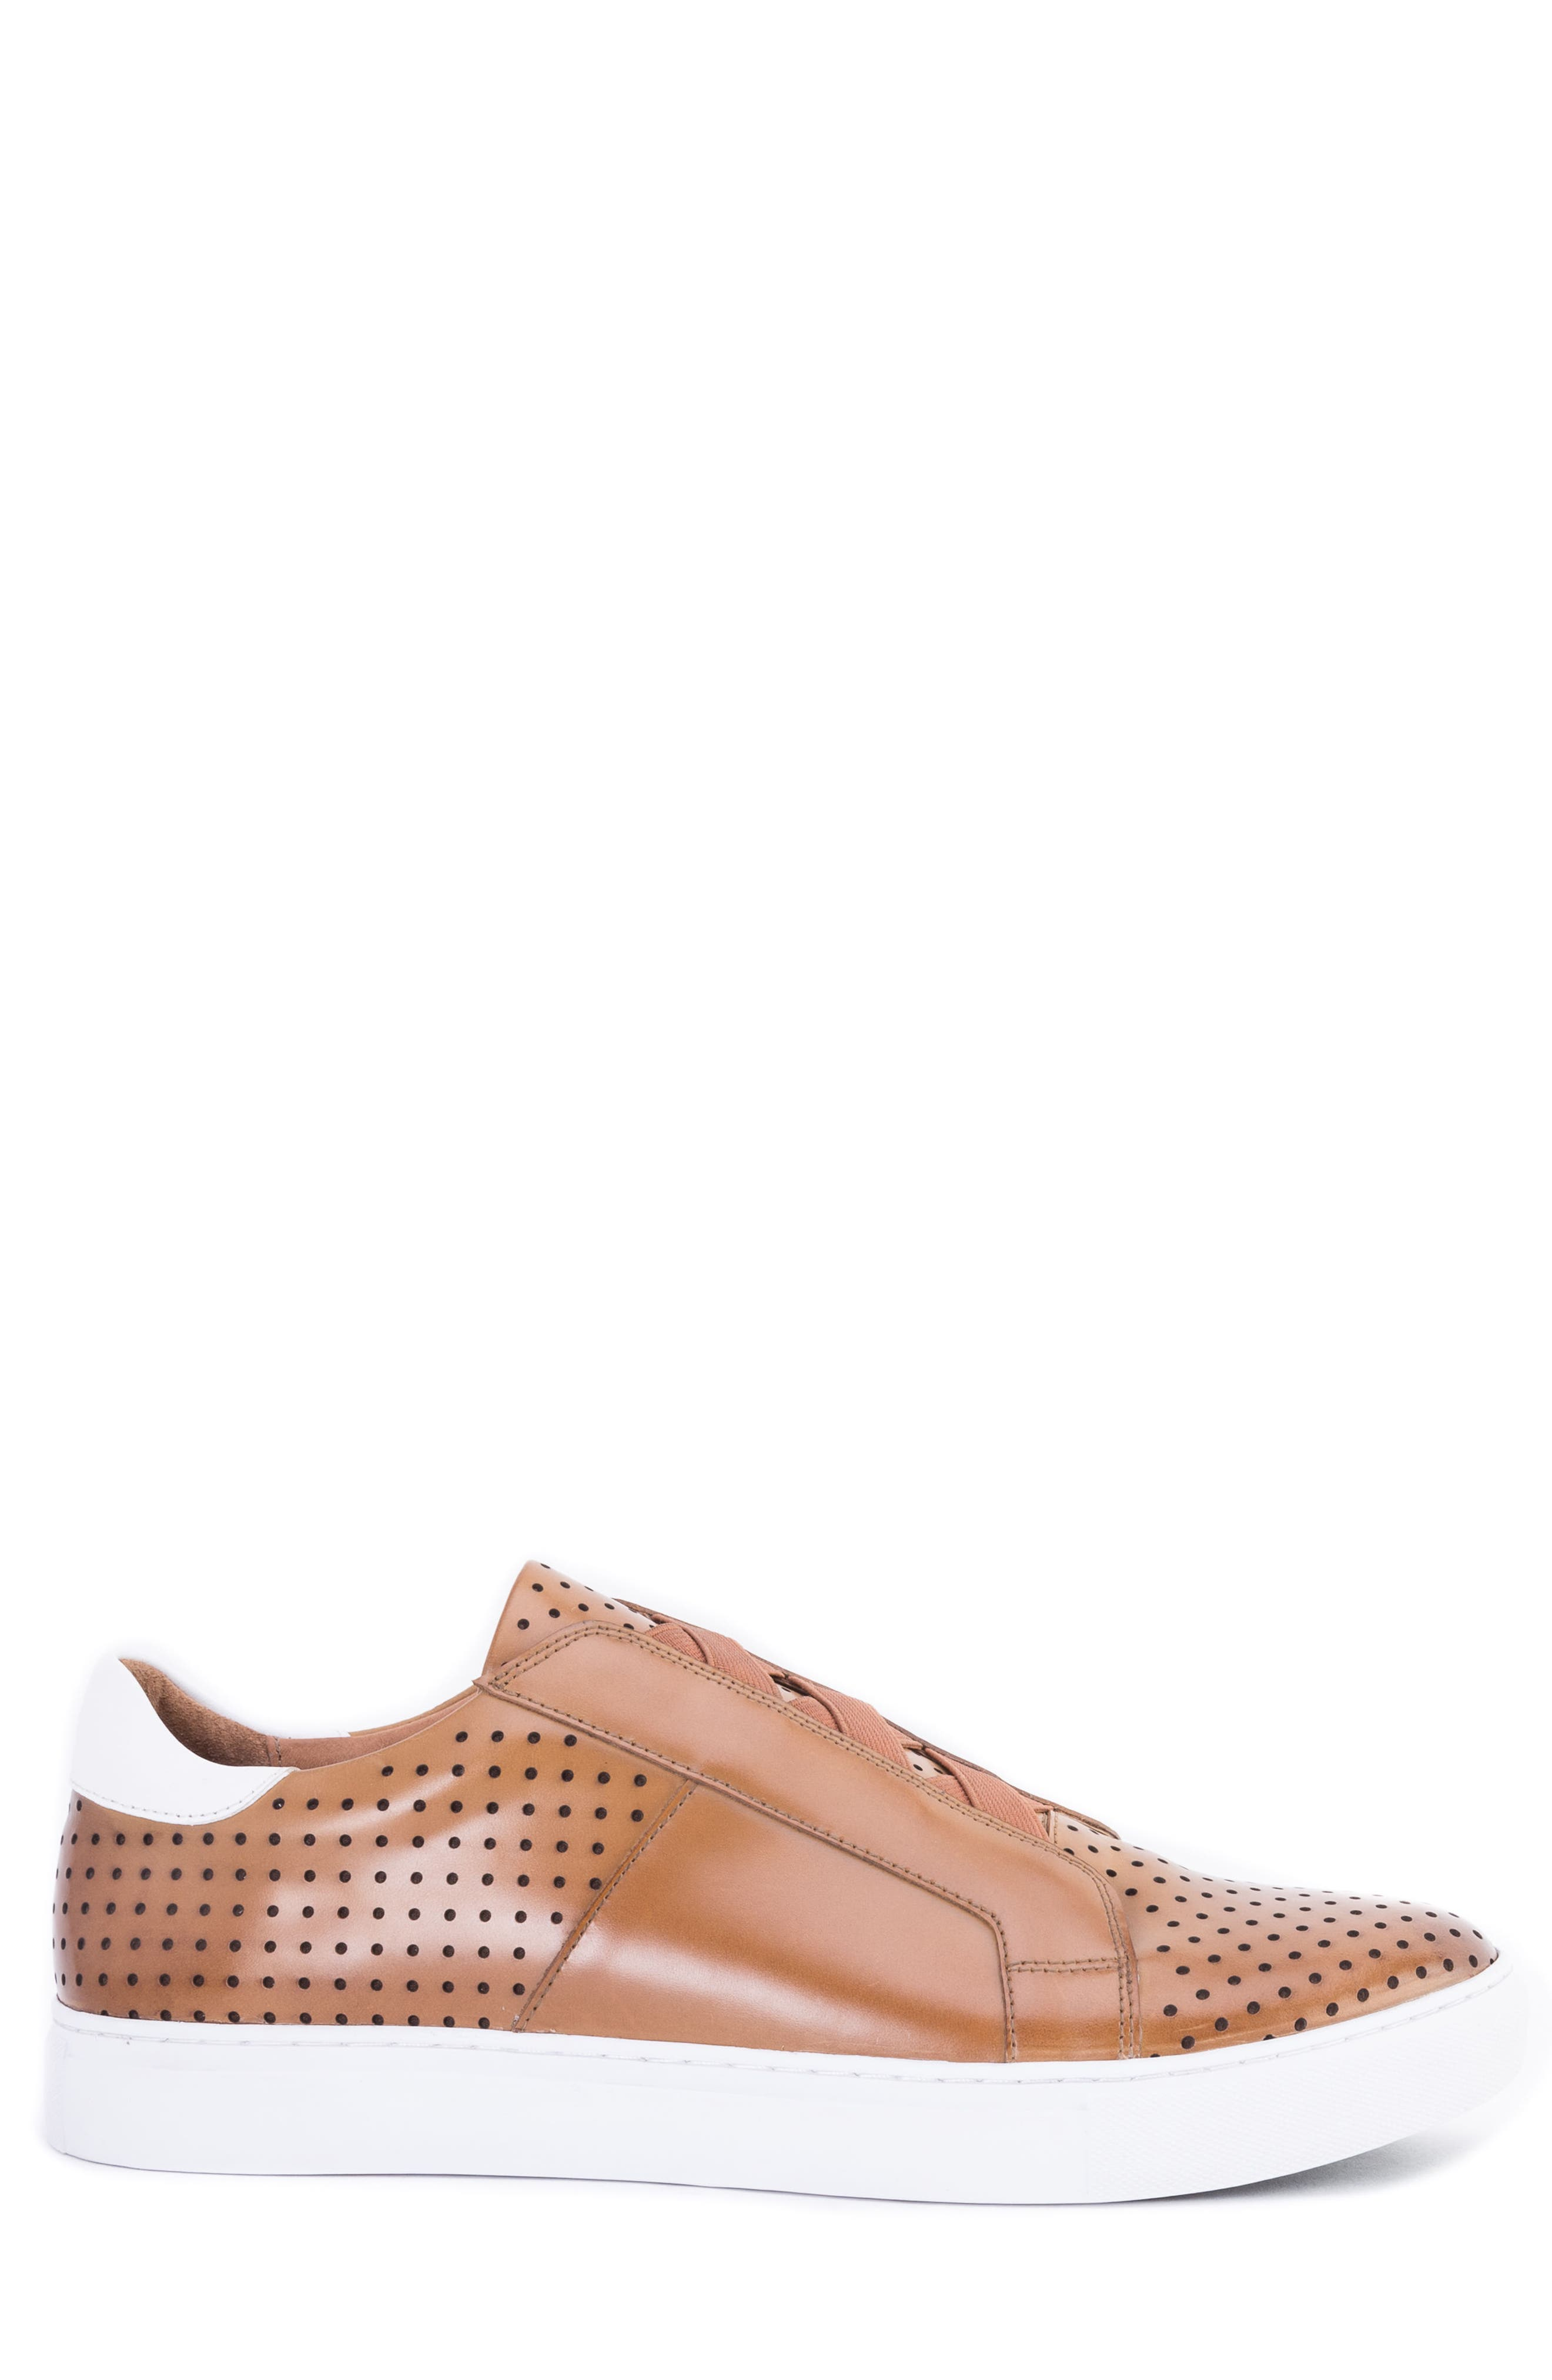 Rowley Perforated Laceless Sneaker,                             Alternate thumbnail 3, color,                             COGNAC LEATHER